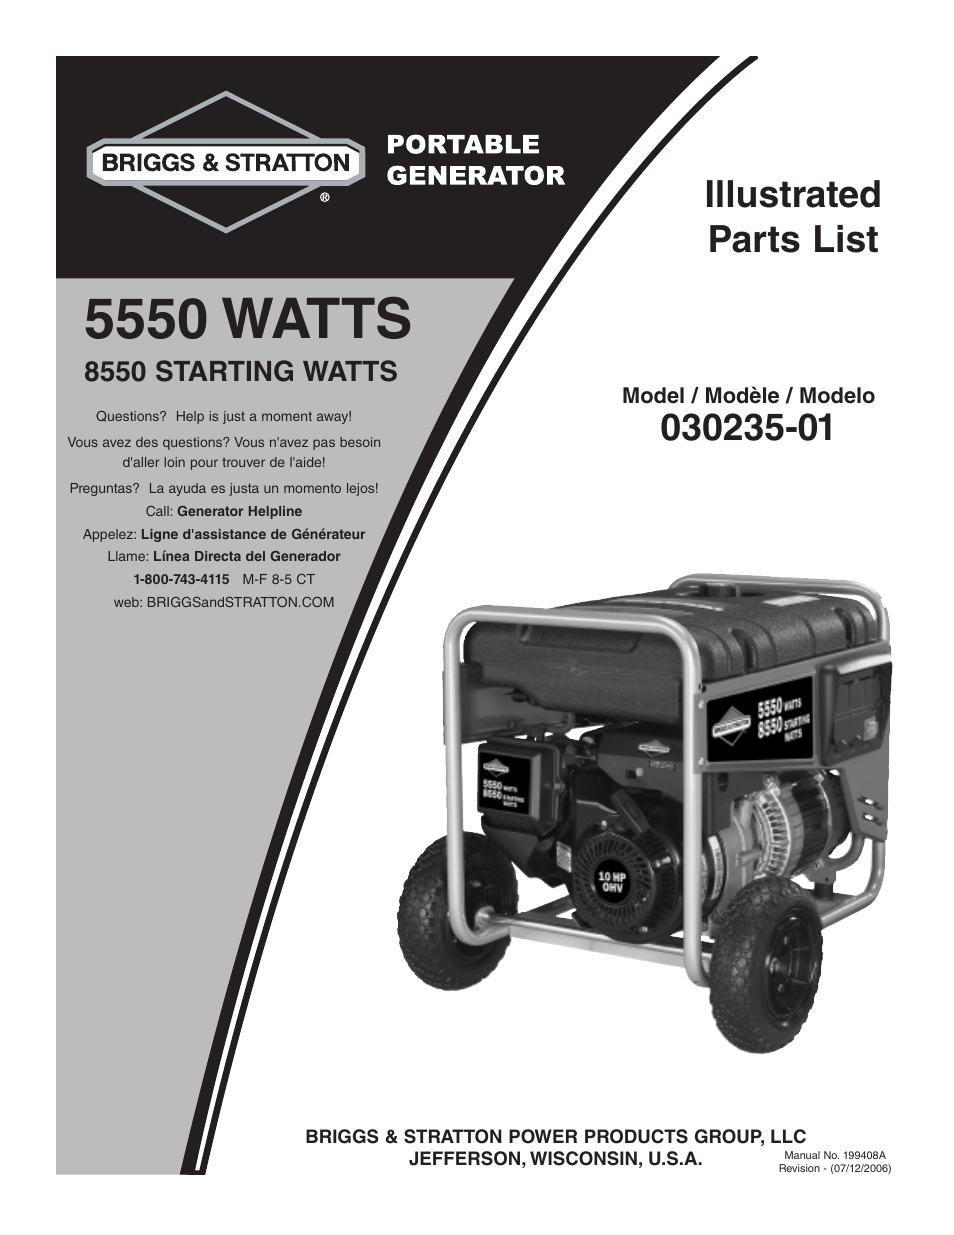 briggs stratton 030235 01 user manual 6 pages rh manualsdir com briggs and stratton storm responder 5500 watt generator manual briggs and stratton wheelhouse 5550 generator parts